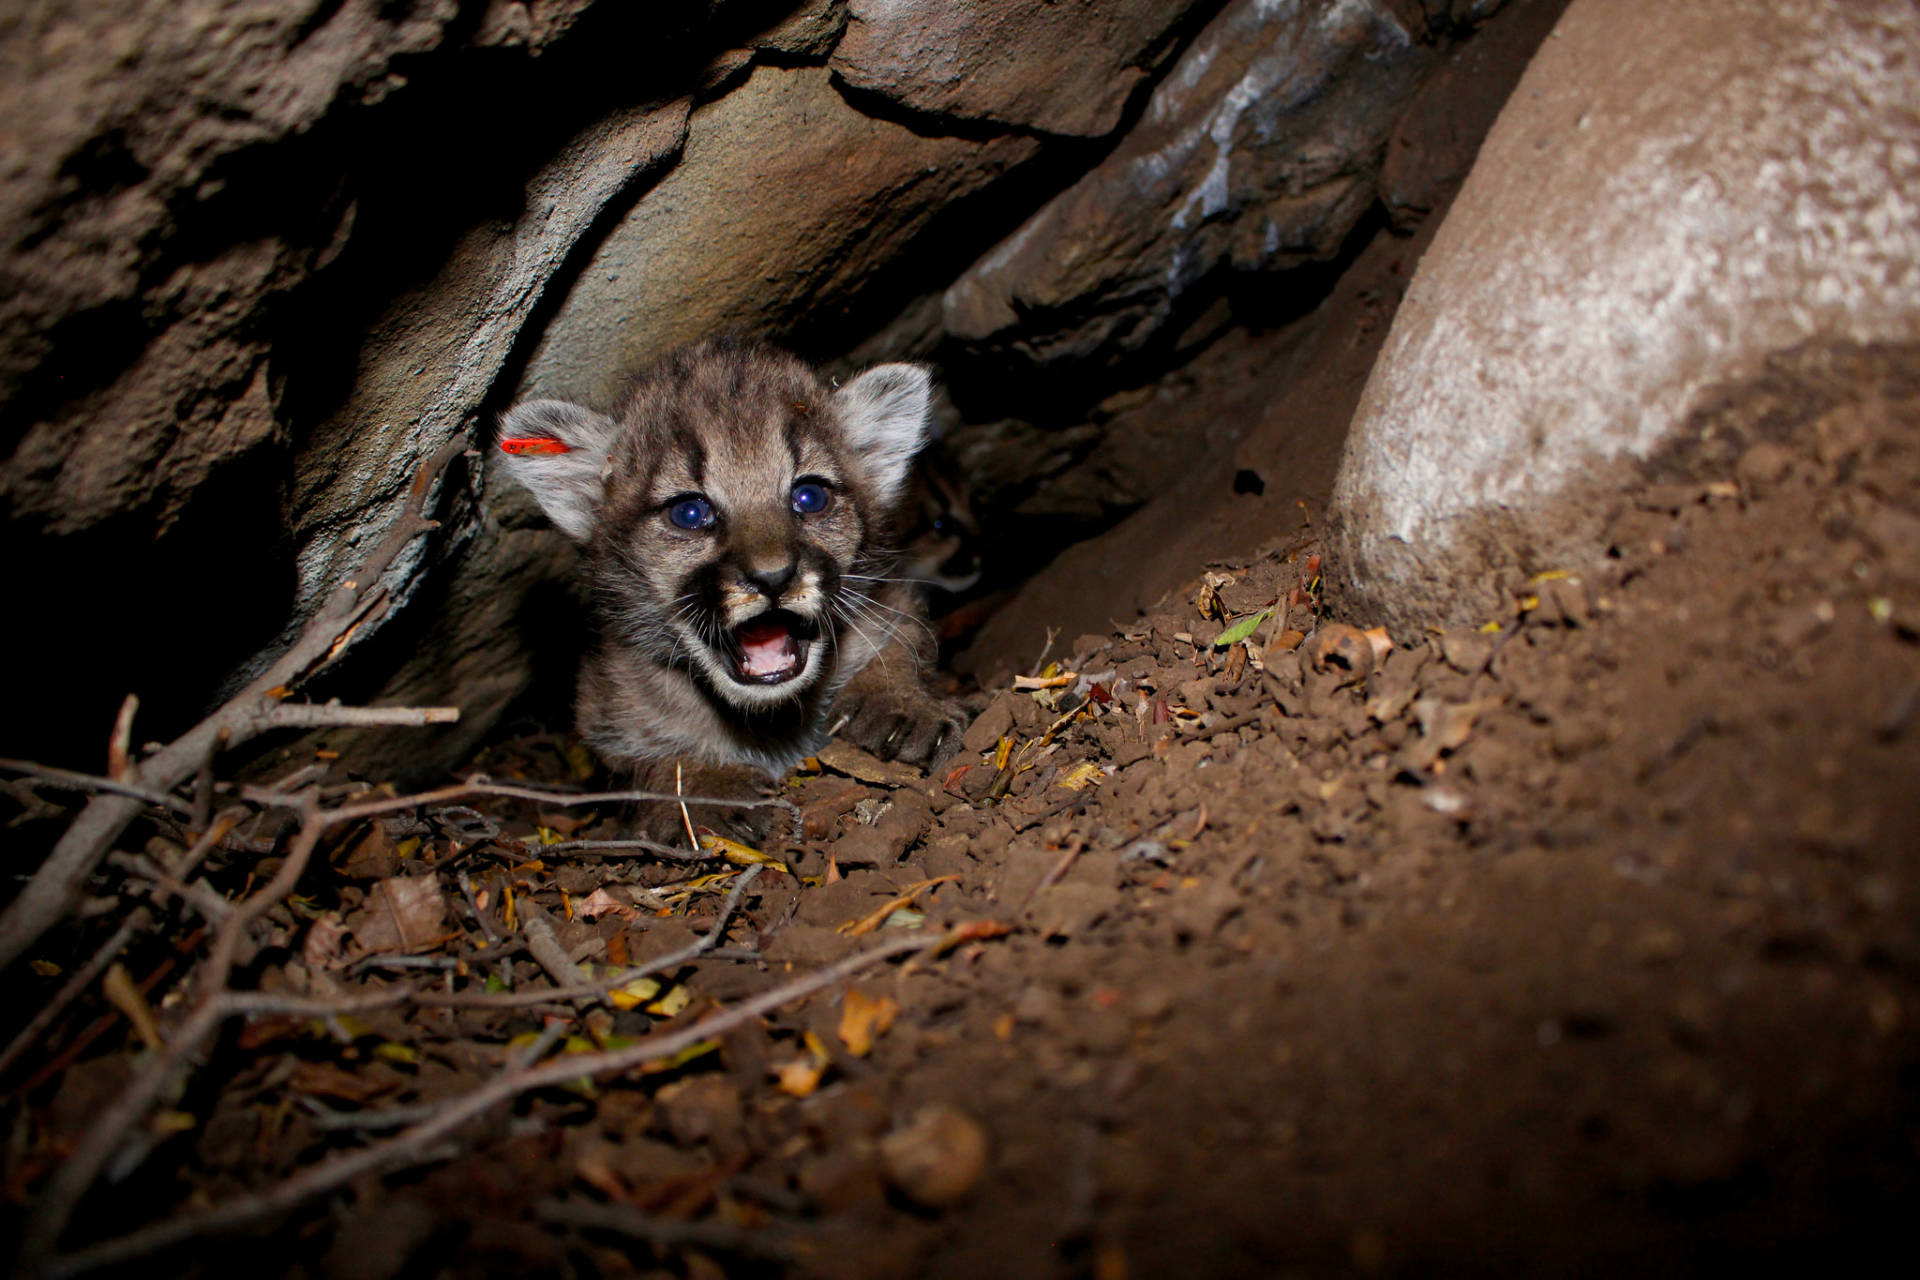 National Park Service researchers discovered a litter of four mountain lion kittens in the Simi Hills, a small area of habitat wedged between the larger Santa Monica and Santa Susana mountain ranges. All four kittens are females and are now known as P-66, P-67, P-68, and P-69. Their mom is P-62. National Park Service